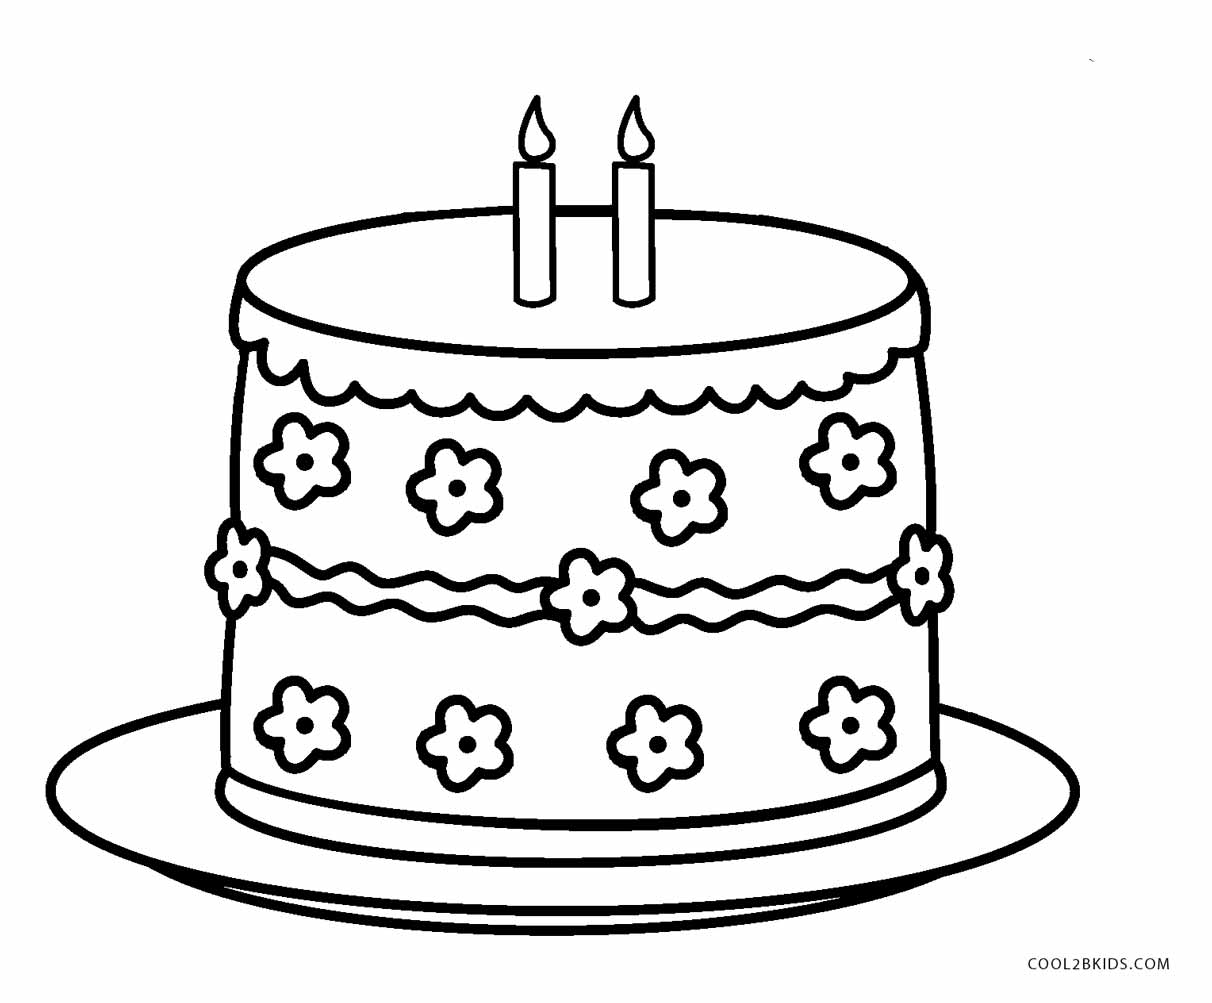 coloring pages birthday cake free printable birthday cake coloring pages for kids cake birthday pages coloring